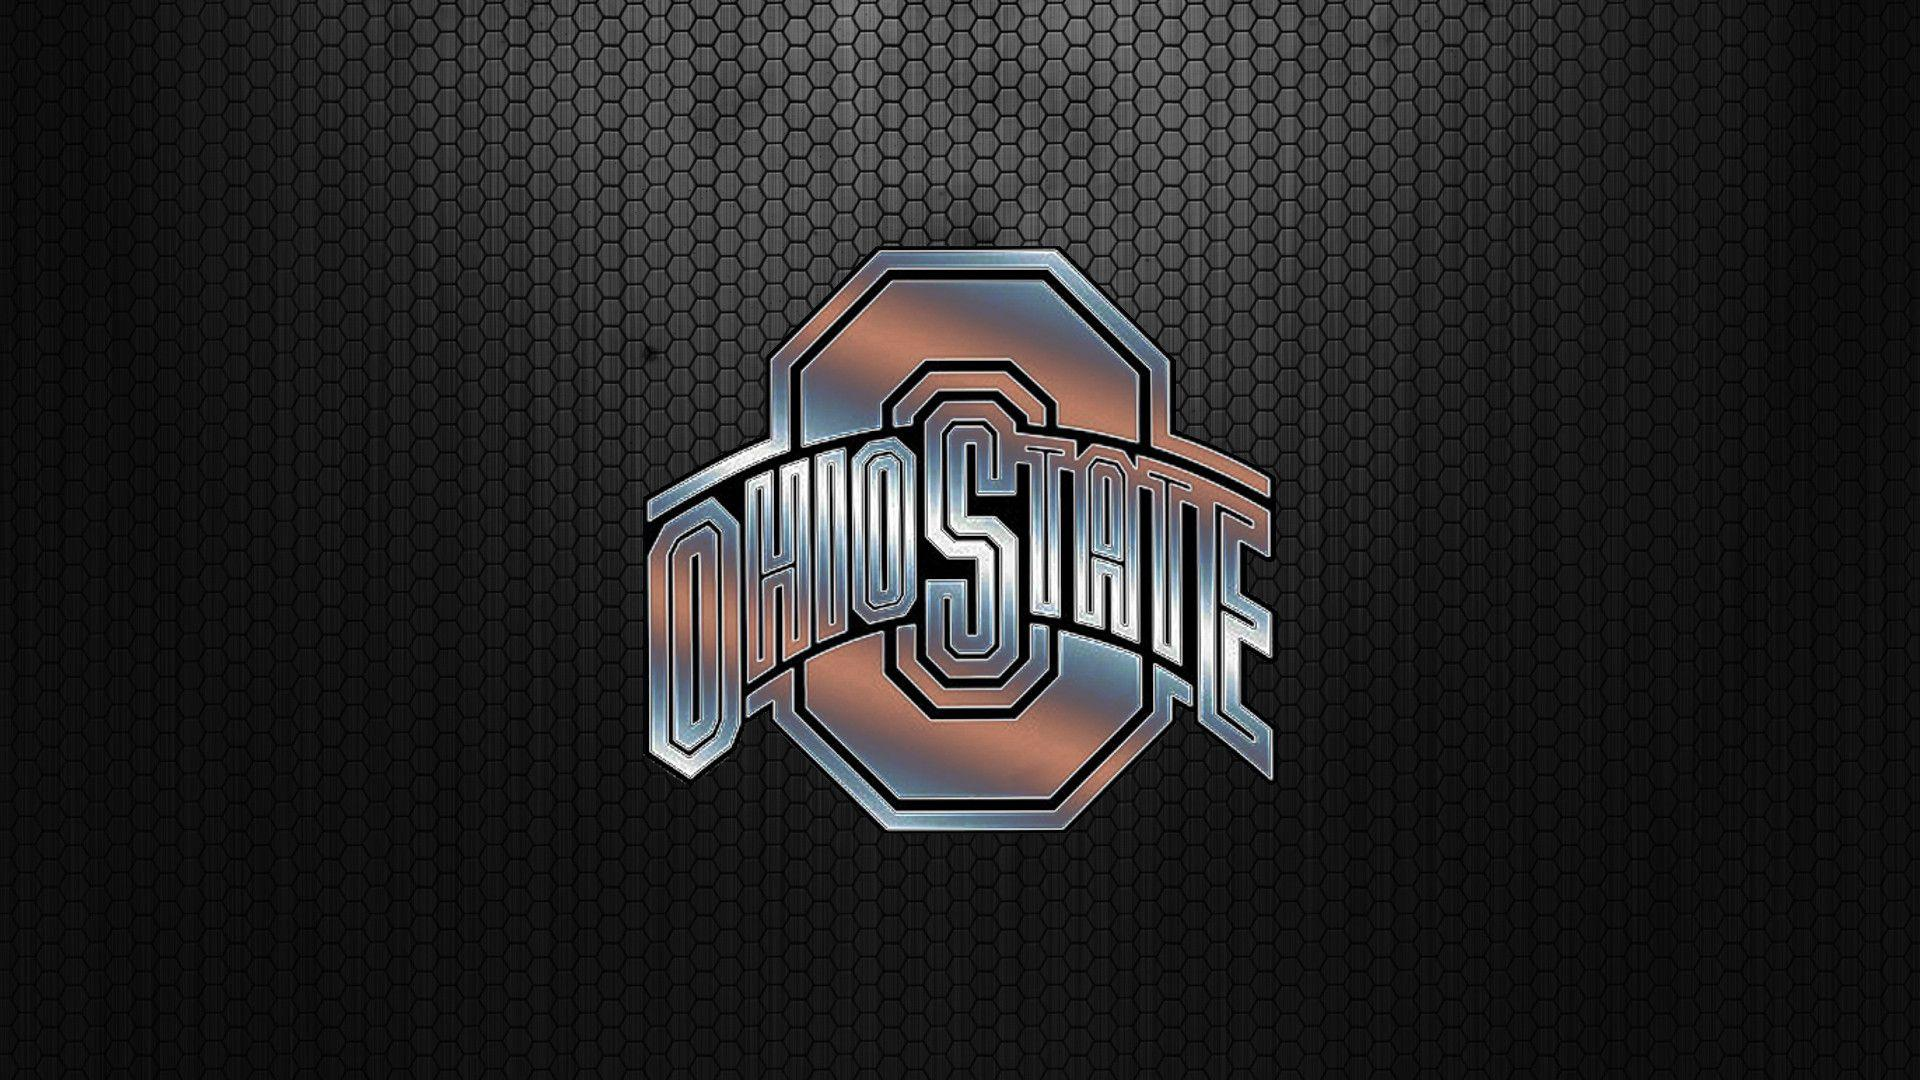 Ohio State University Wallpapers Full HDQ Ohio State